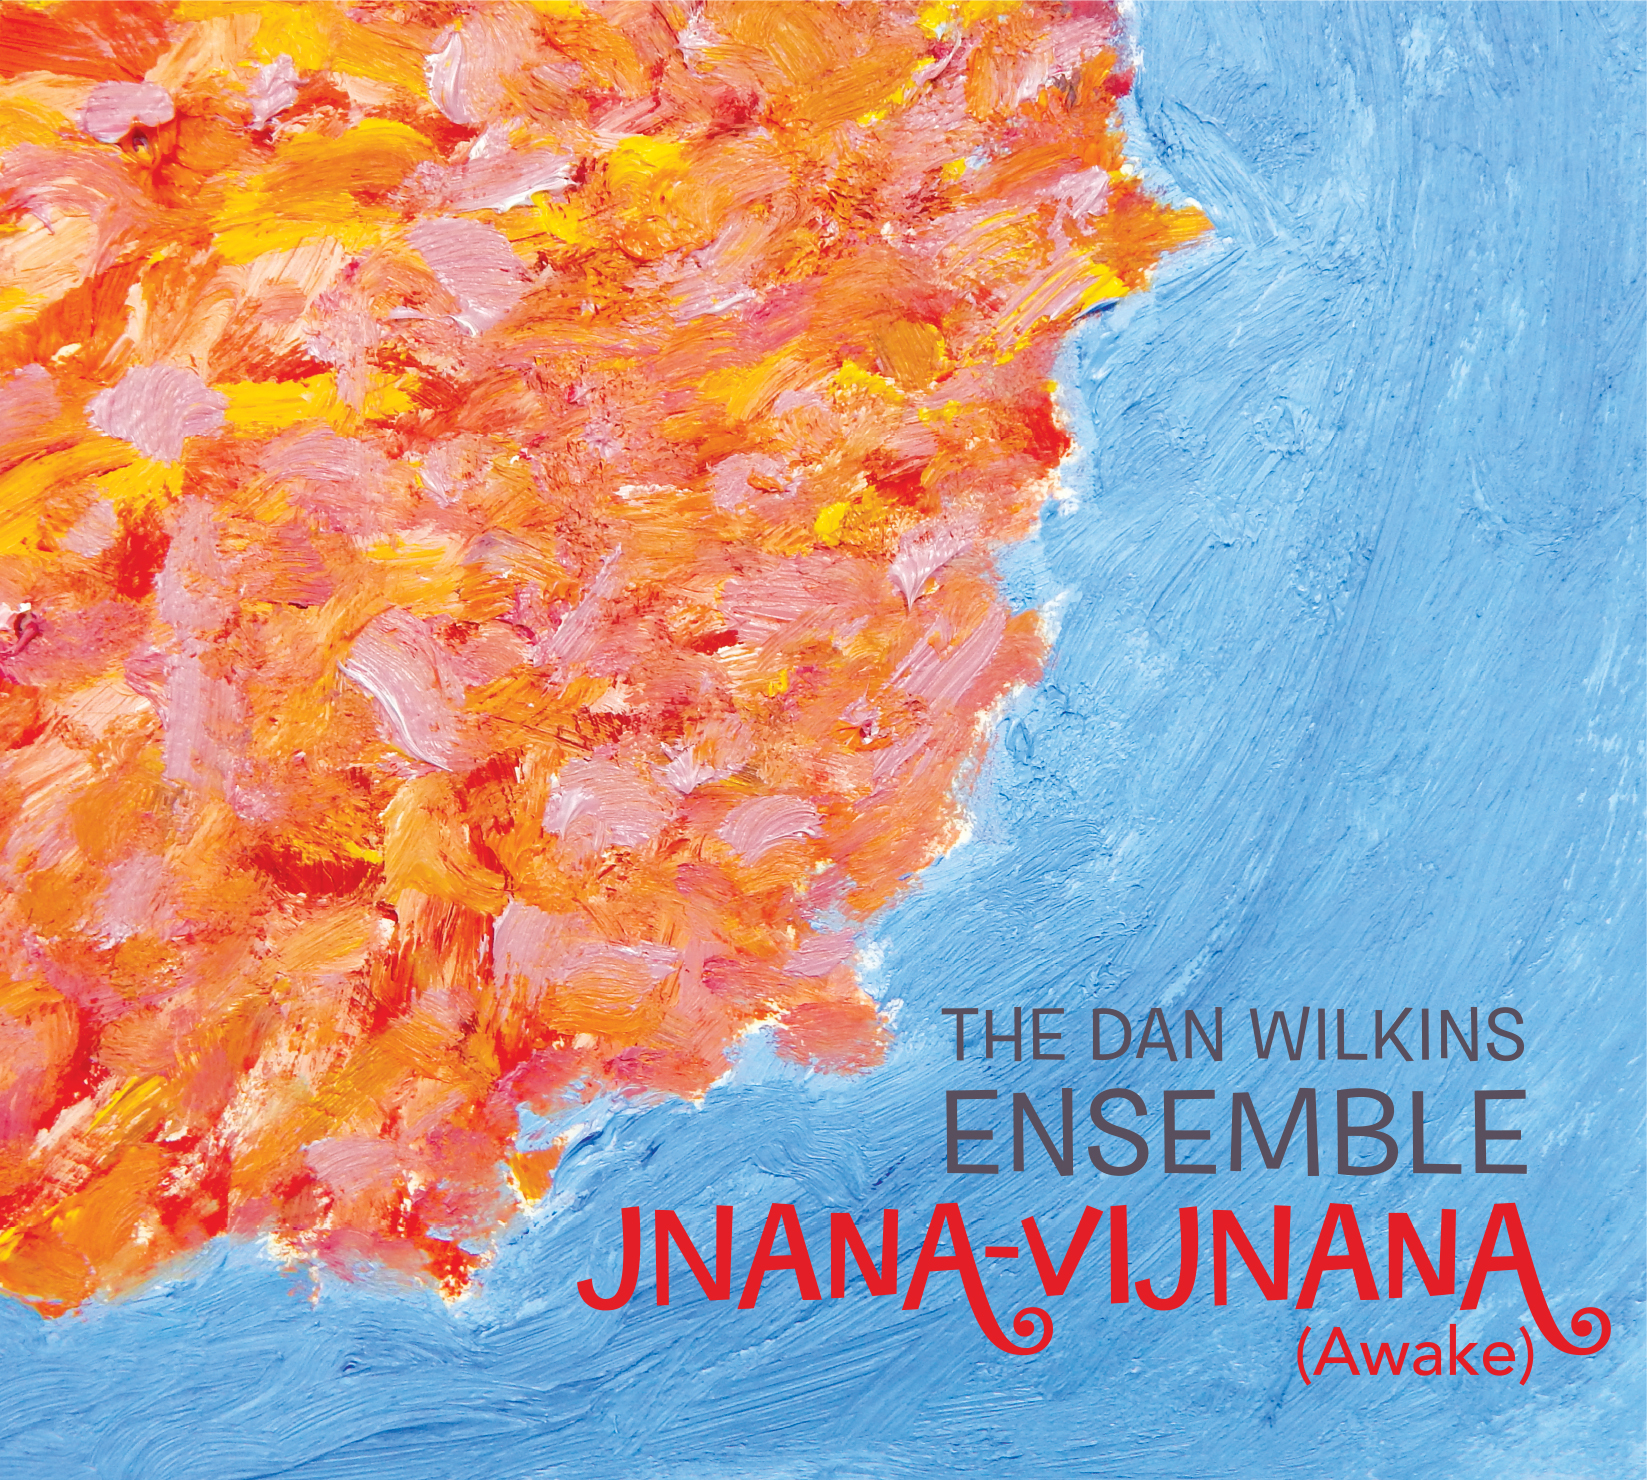 Jazz Weekly Reviews The Dan Wilkins Ensemble 'Jnana-Vijnana (Awake)'